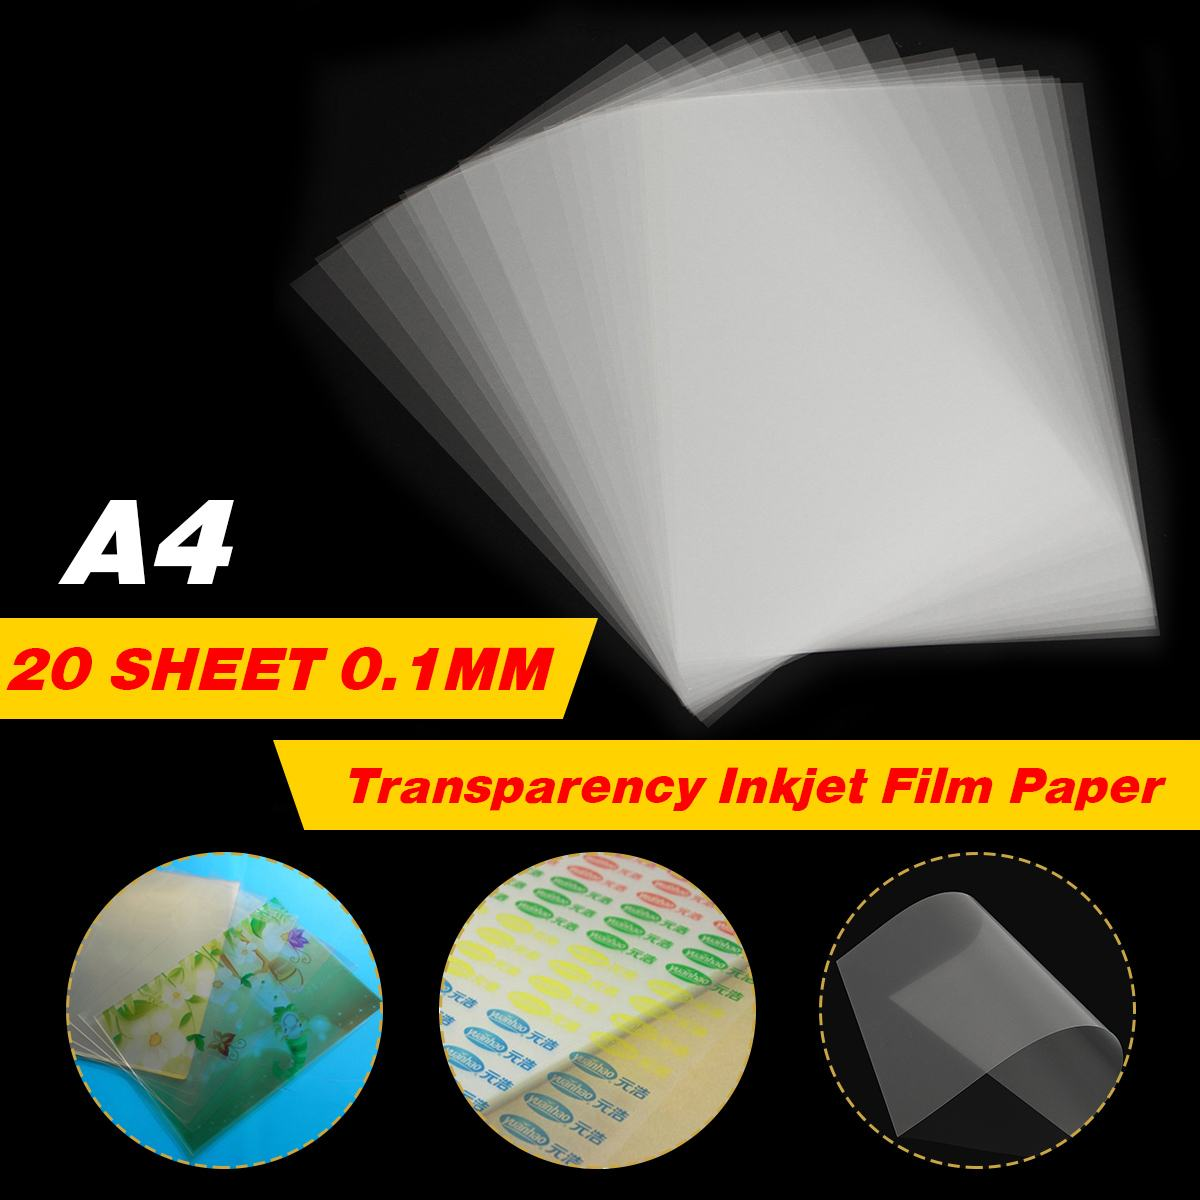 20 Sheet A4 Transparent Inkjet Film Paper Screen Printing Print Stencil Design 29.6 X 21cm Non-waterproof Thickness 0.12mm